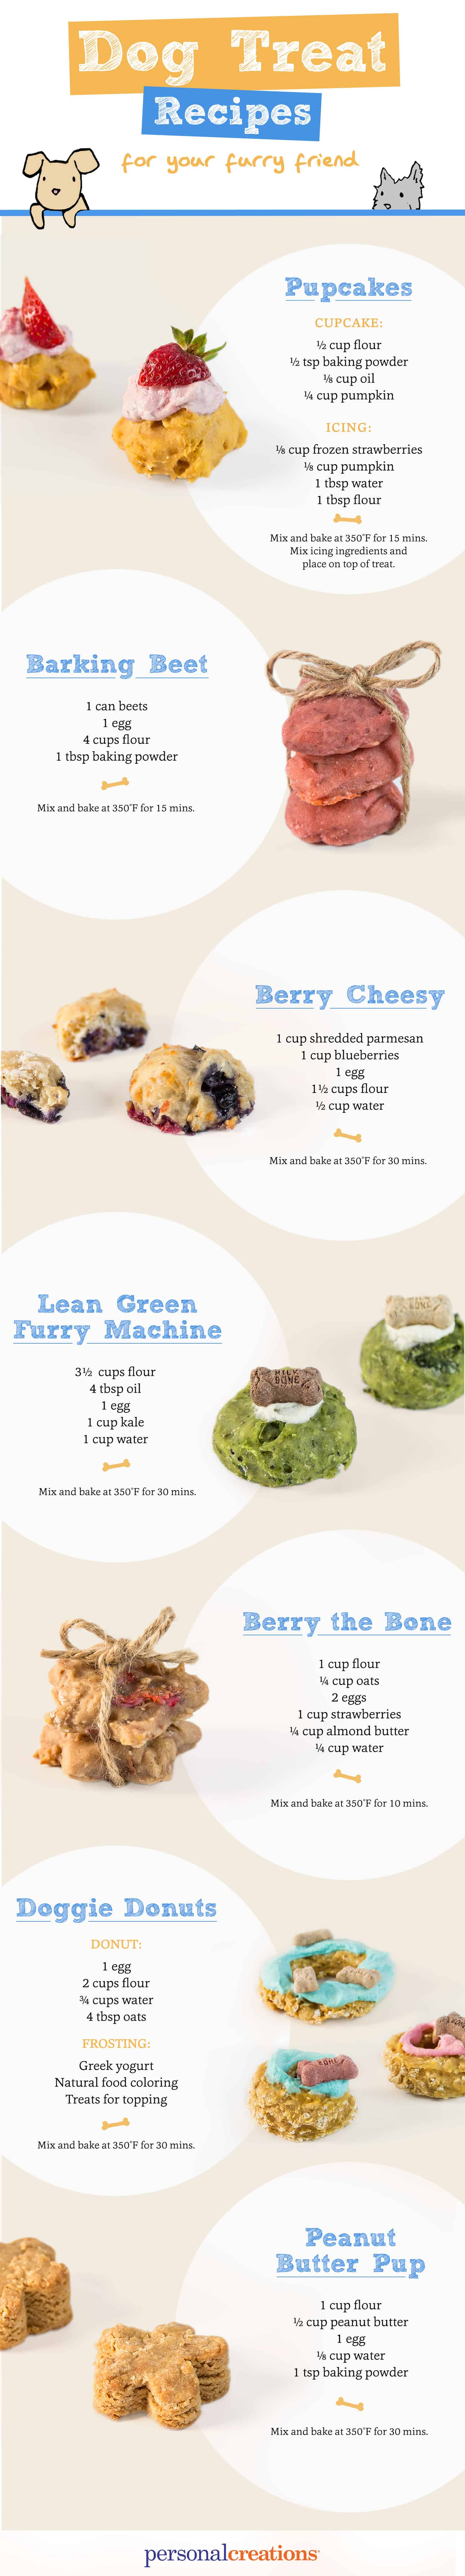 Whip up tasty goodies for your furry best friend in a jiffy with these 7 easy dog treat recipes!